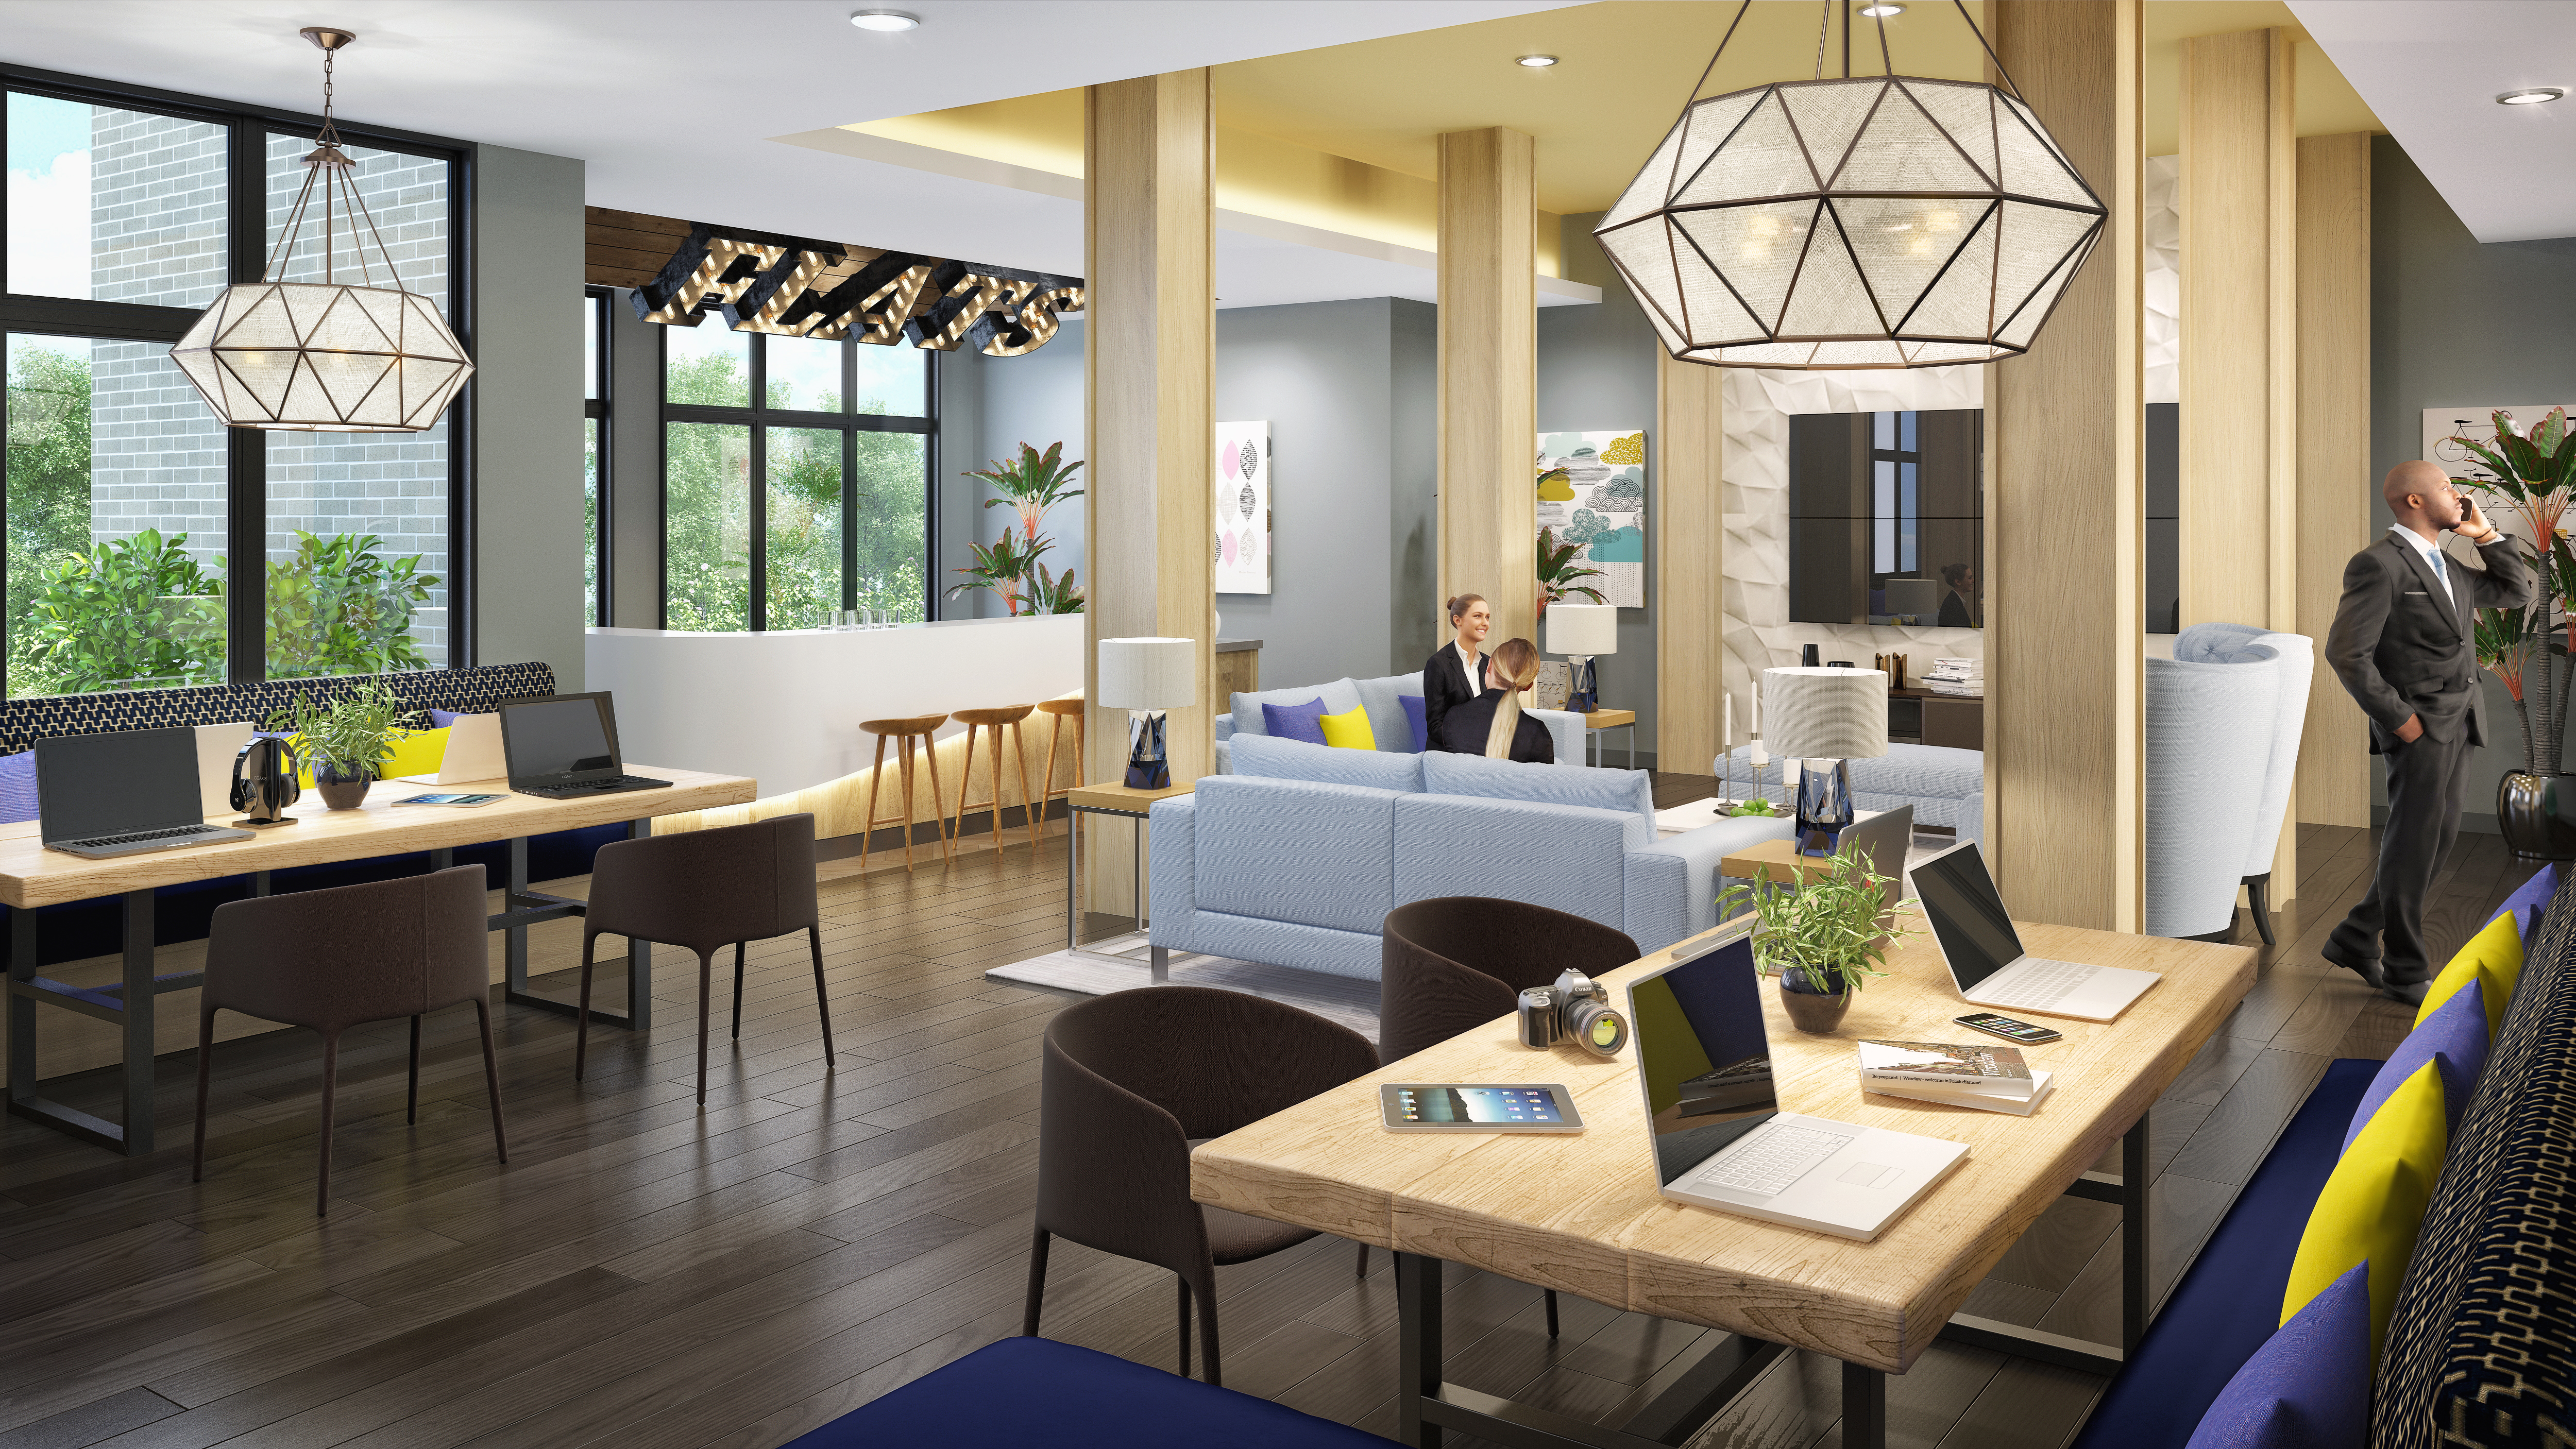 Clubhouse interior with workspace and gathering areas